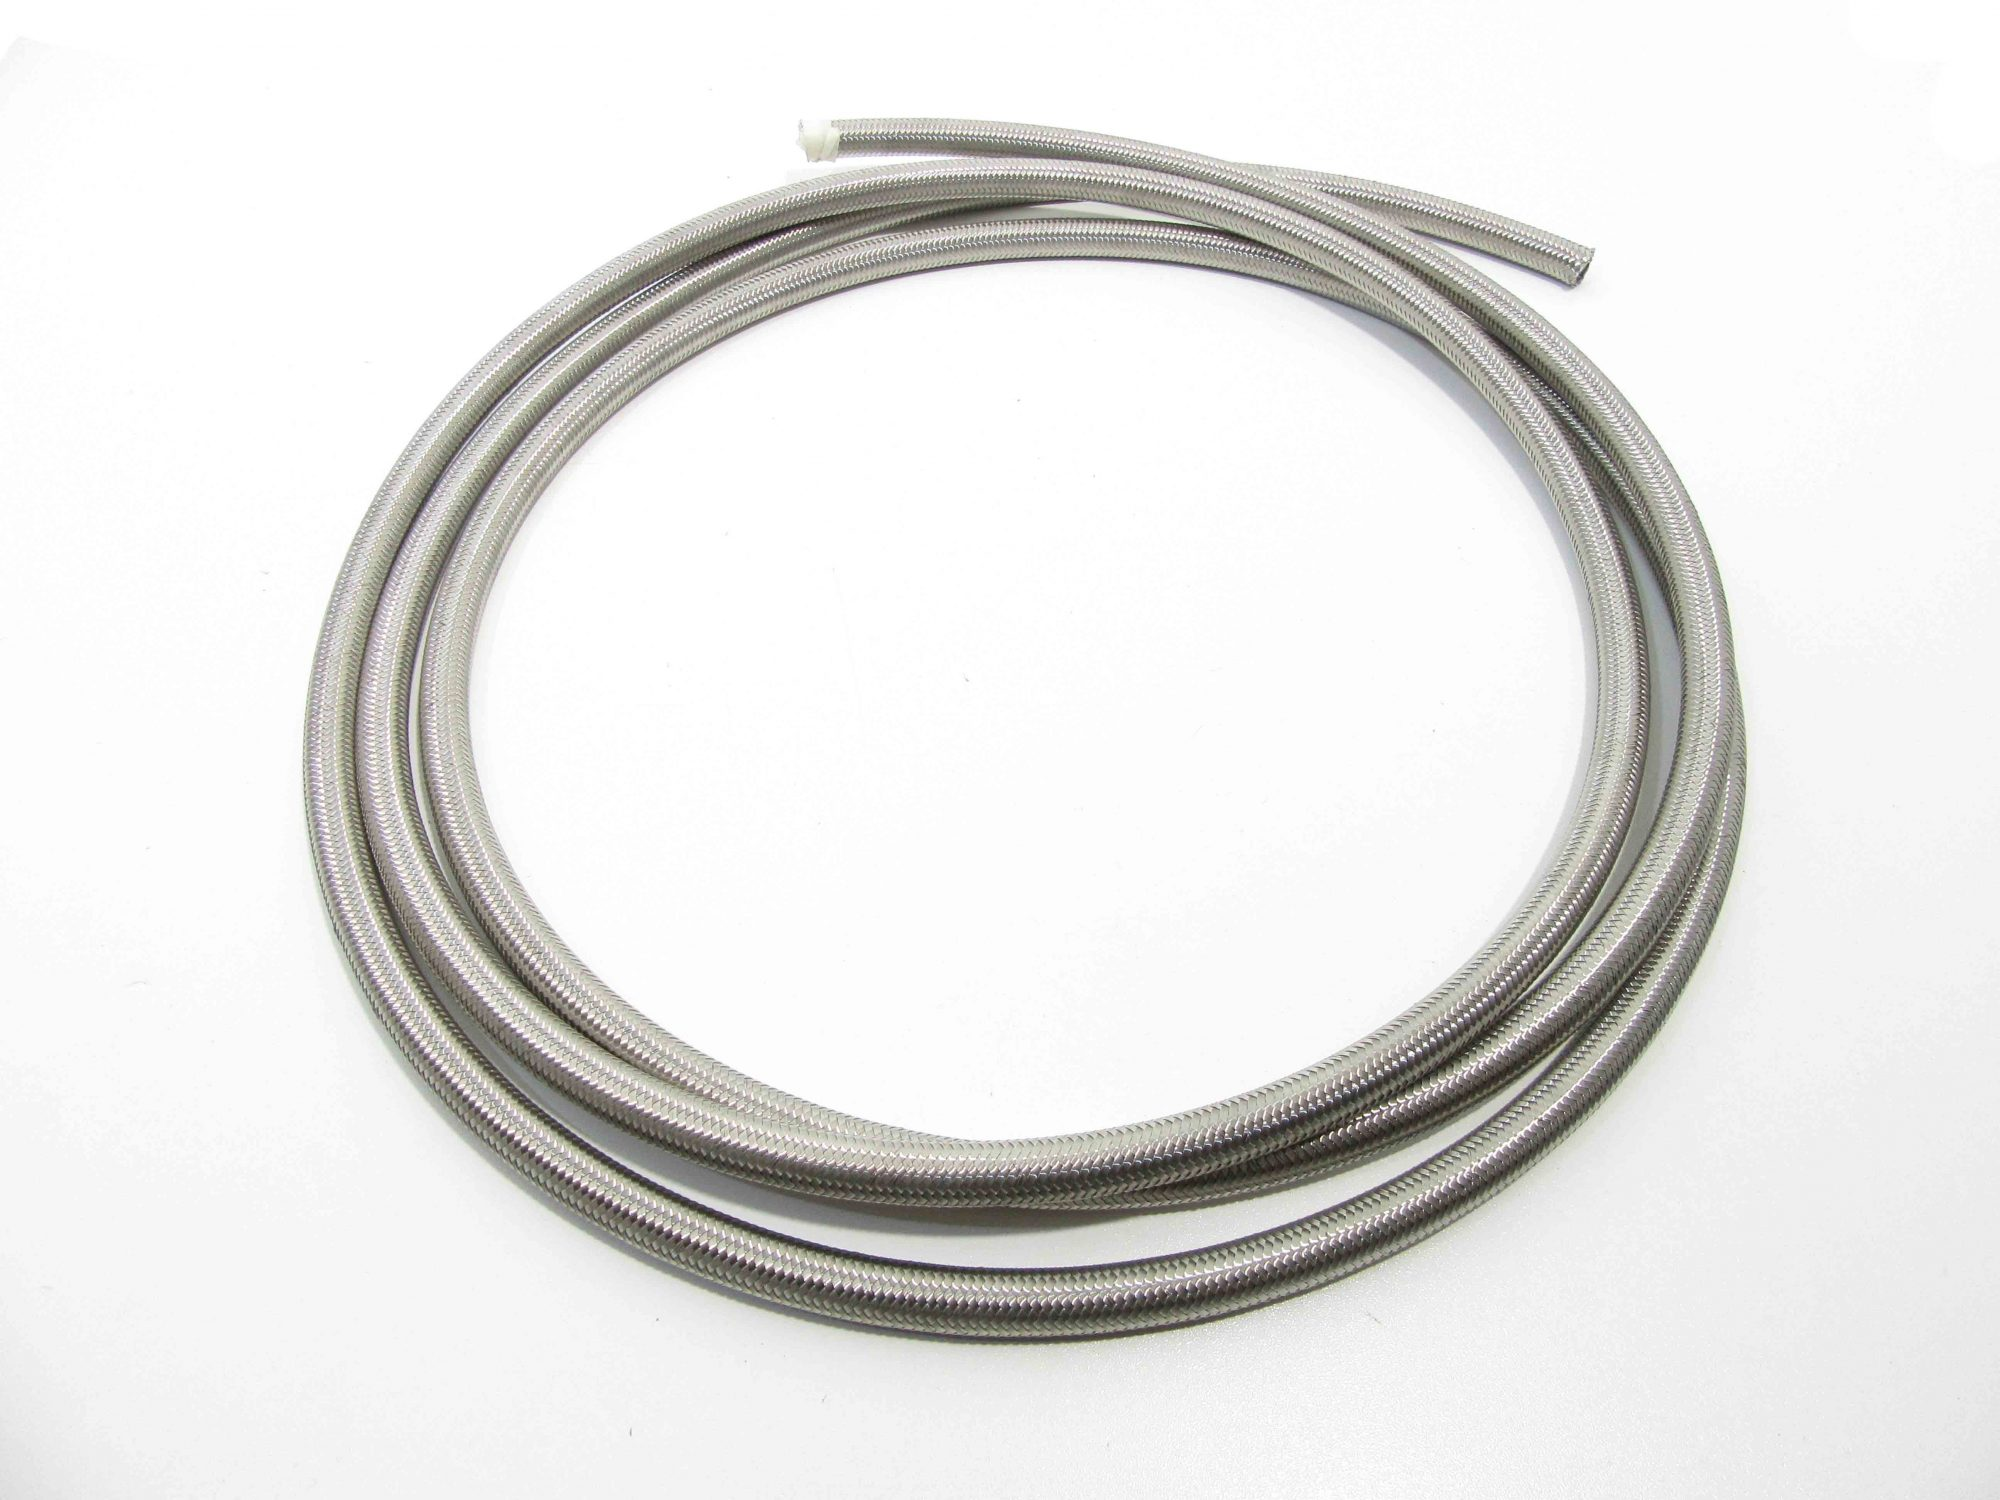 3AN Stainless Braided Teflon Brake Hose 10m 3 AN